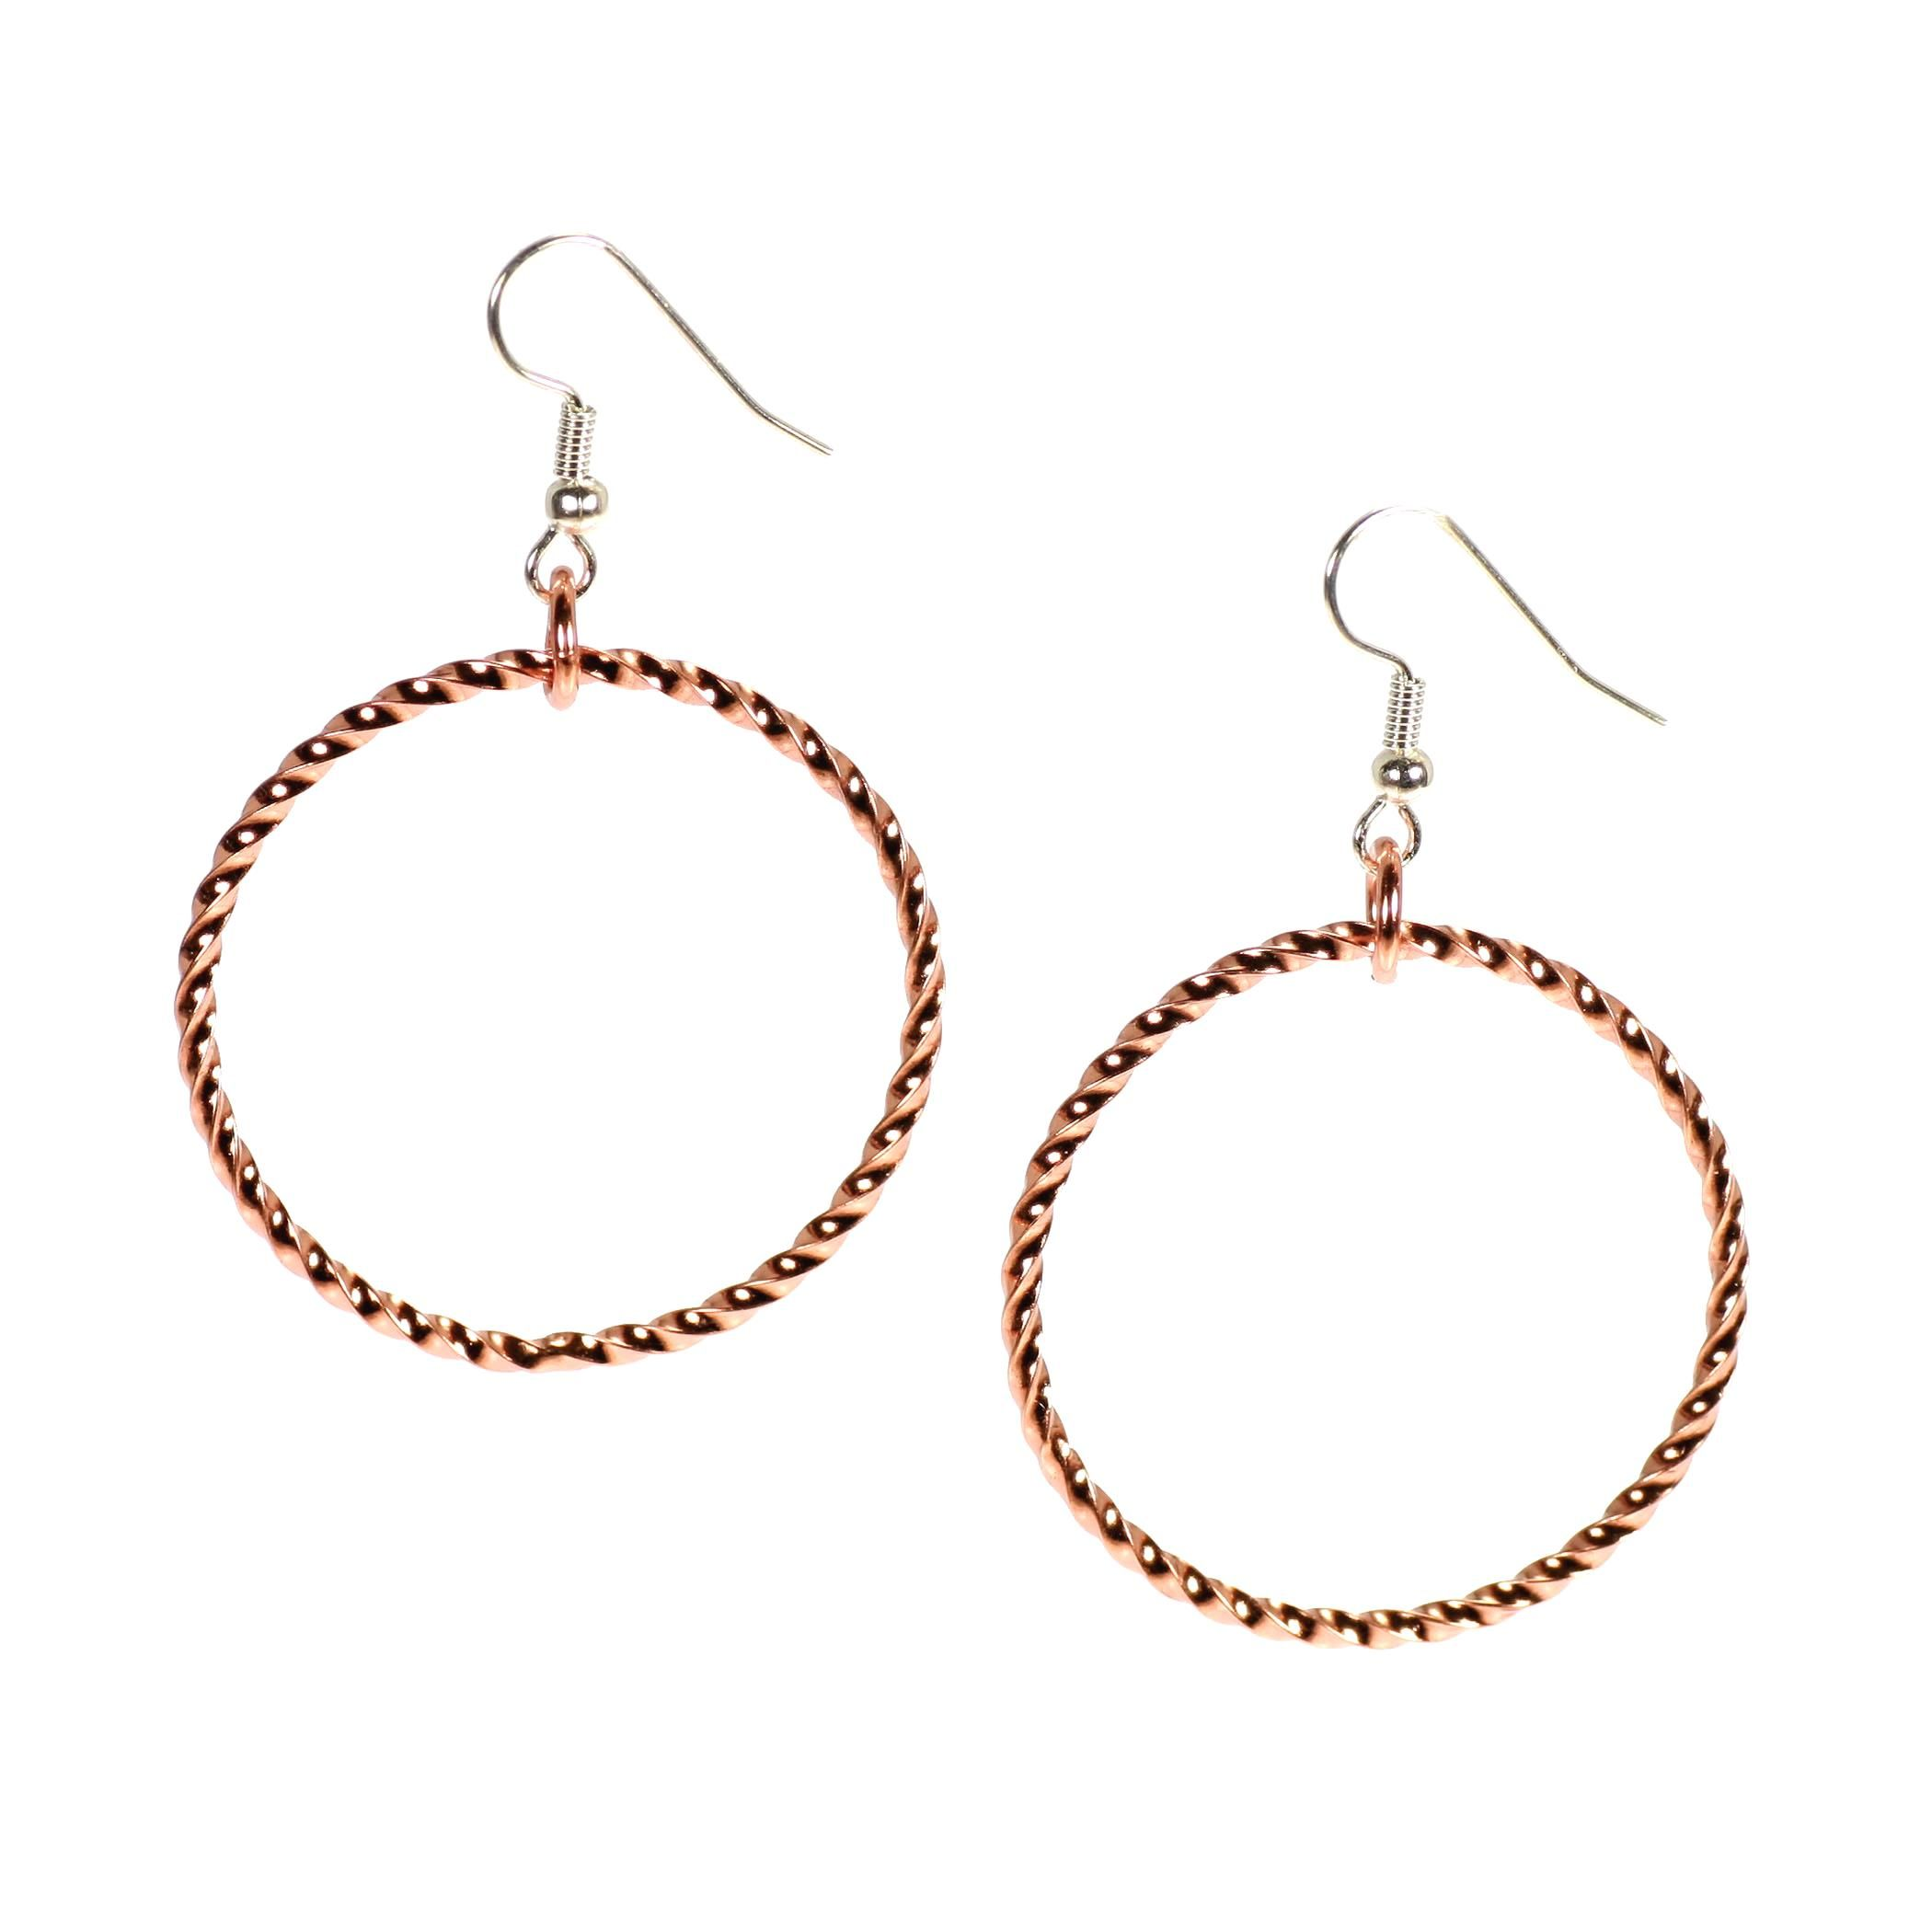 1de22ad31 Over 20% OFF Superb Copper Cable Hoop Earrings Listed on #Amazon #Copper  http